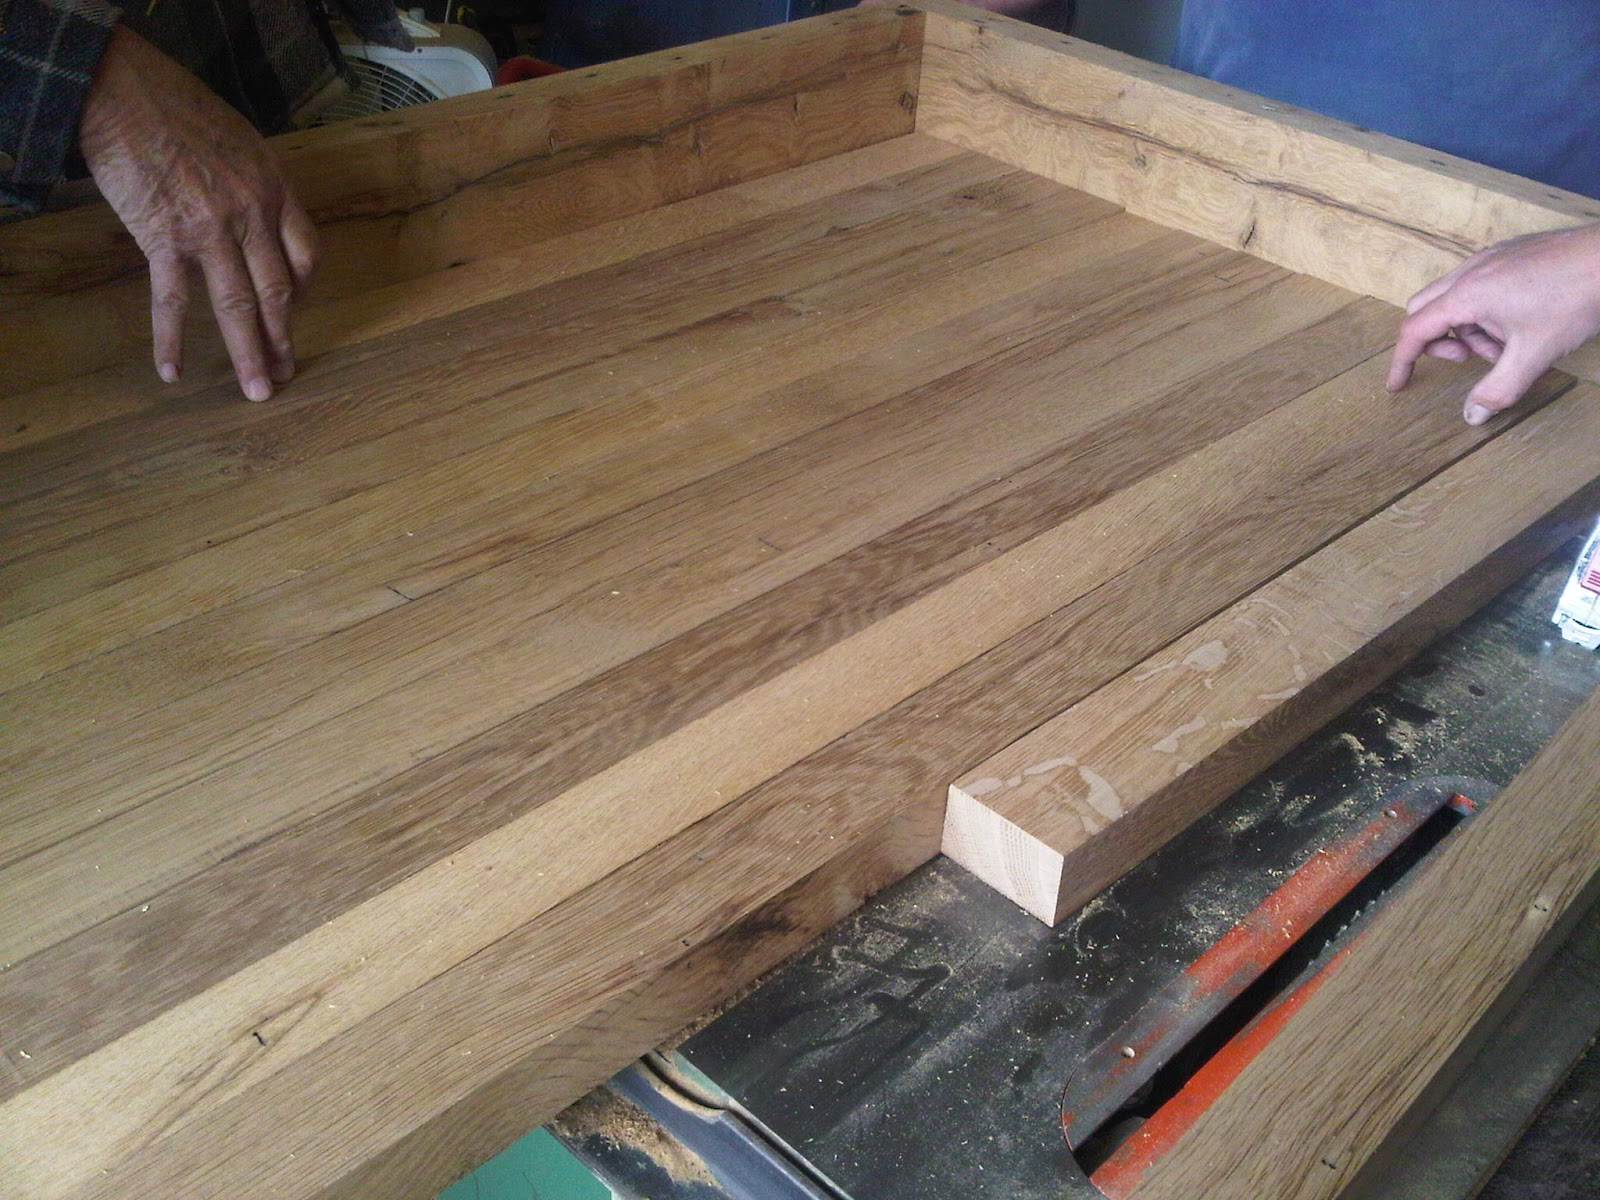 butcher block countertops made out of wood countertops kitchen Butcher Block Countertops Made Out of Reclaimed Wood